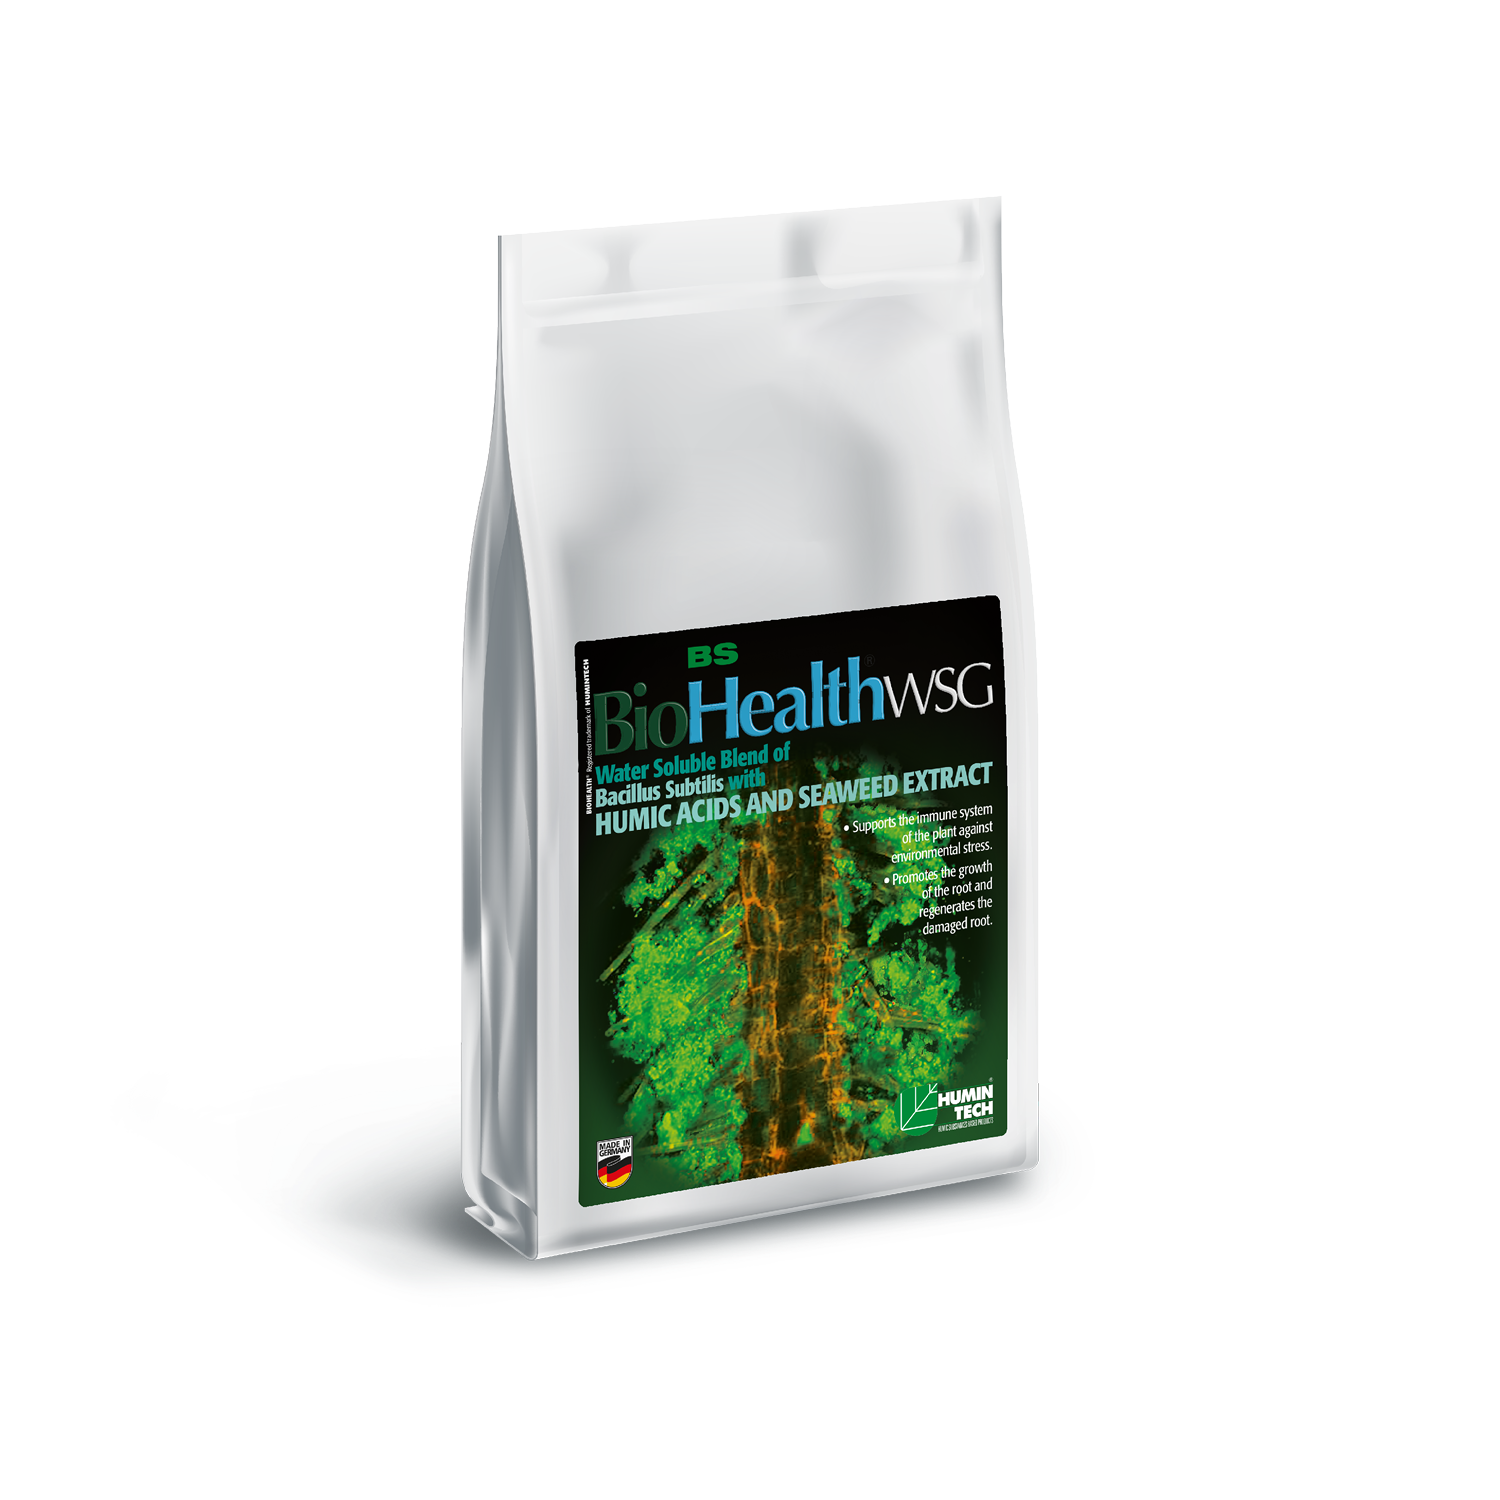 BioHealth BS WSG Water Soluble Blend of Bacillus Subtilis Seaweed Extract and Humic Acids bag